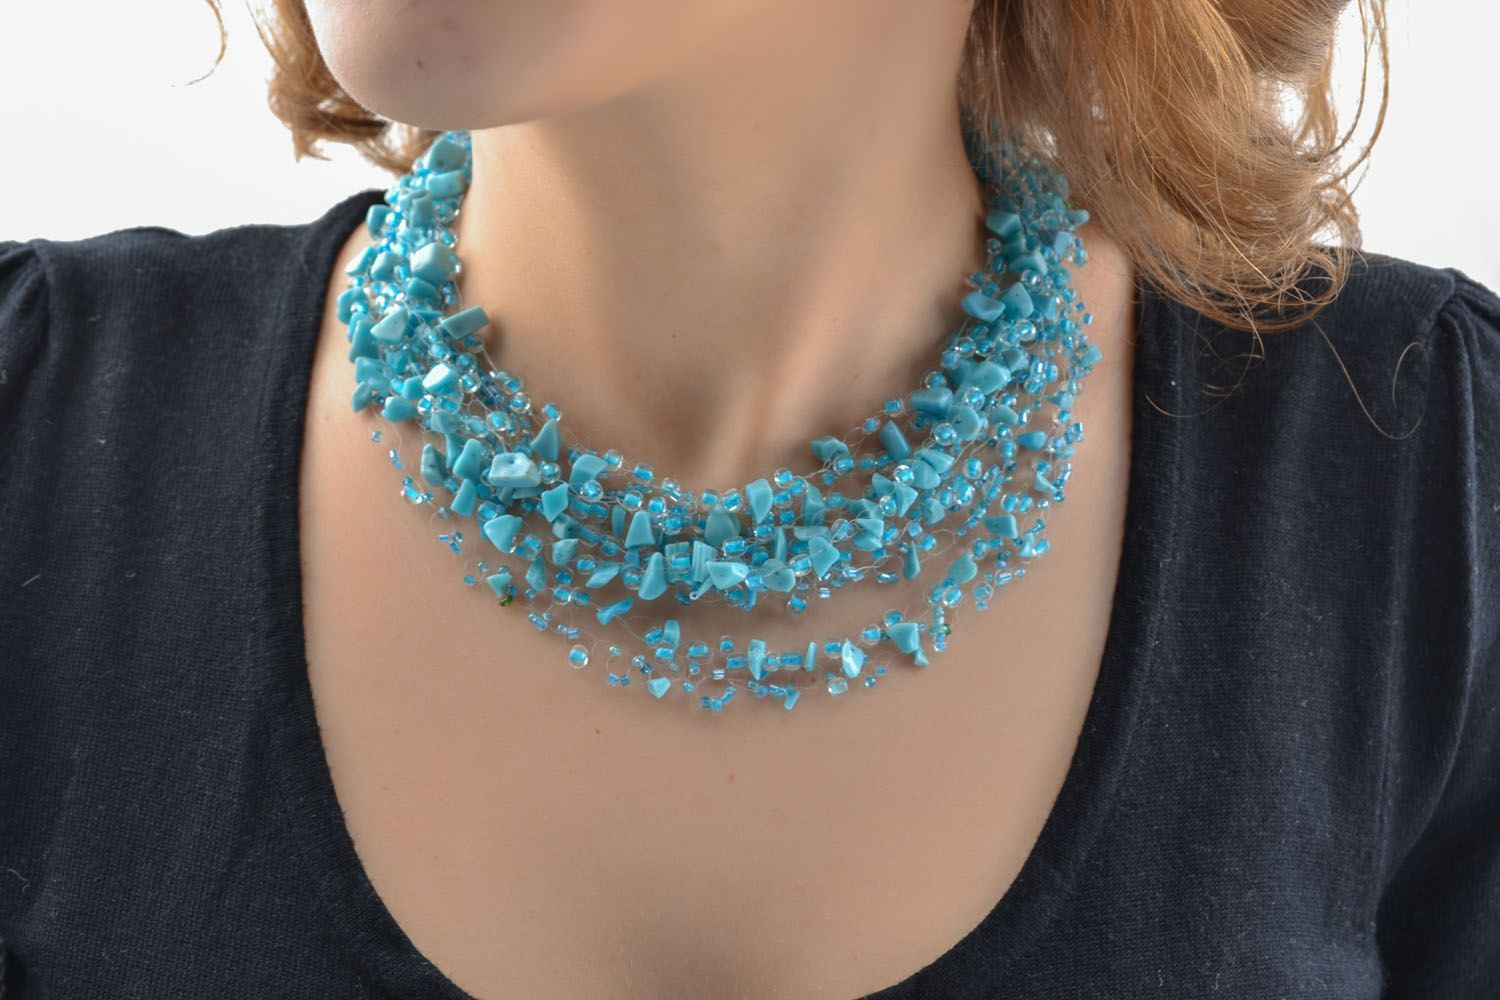 Necklace with turquoise and beads photo 5